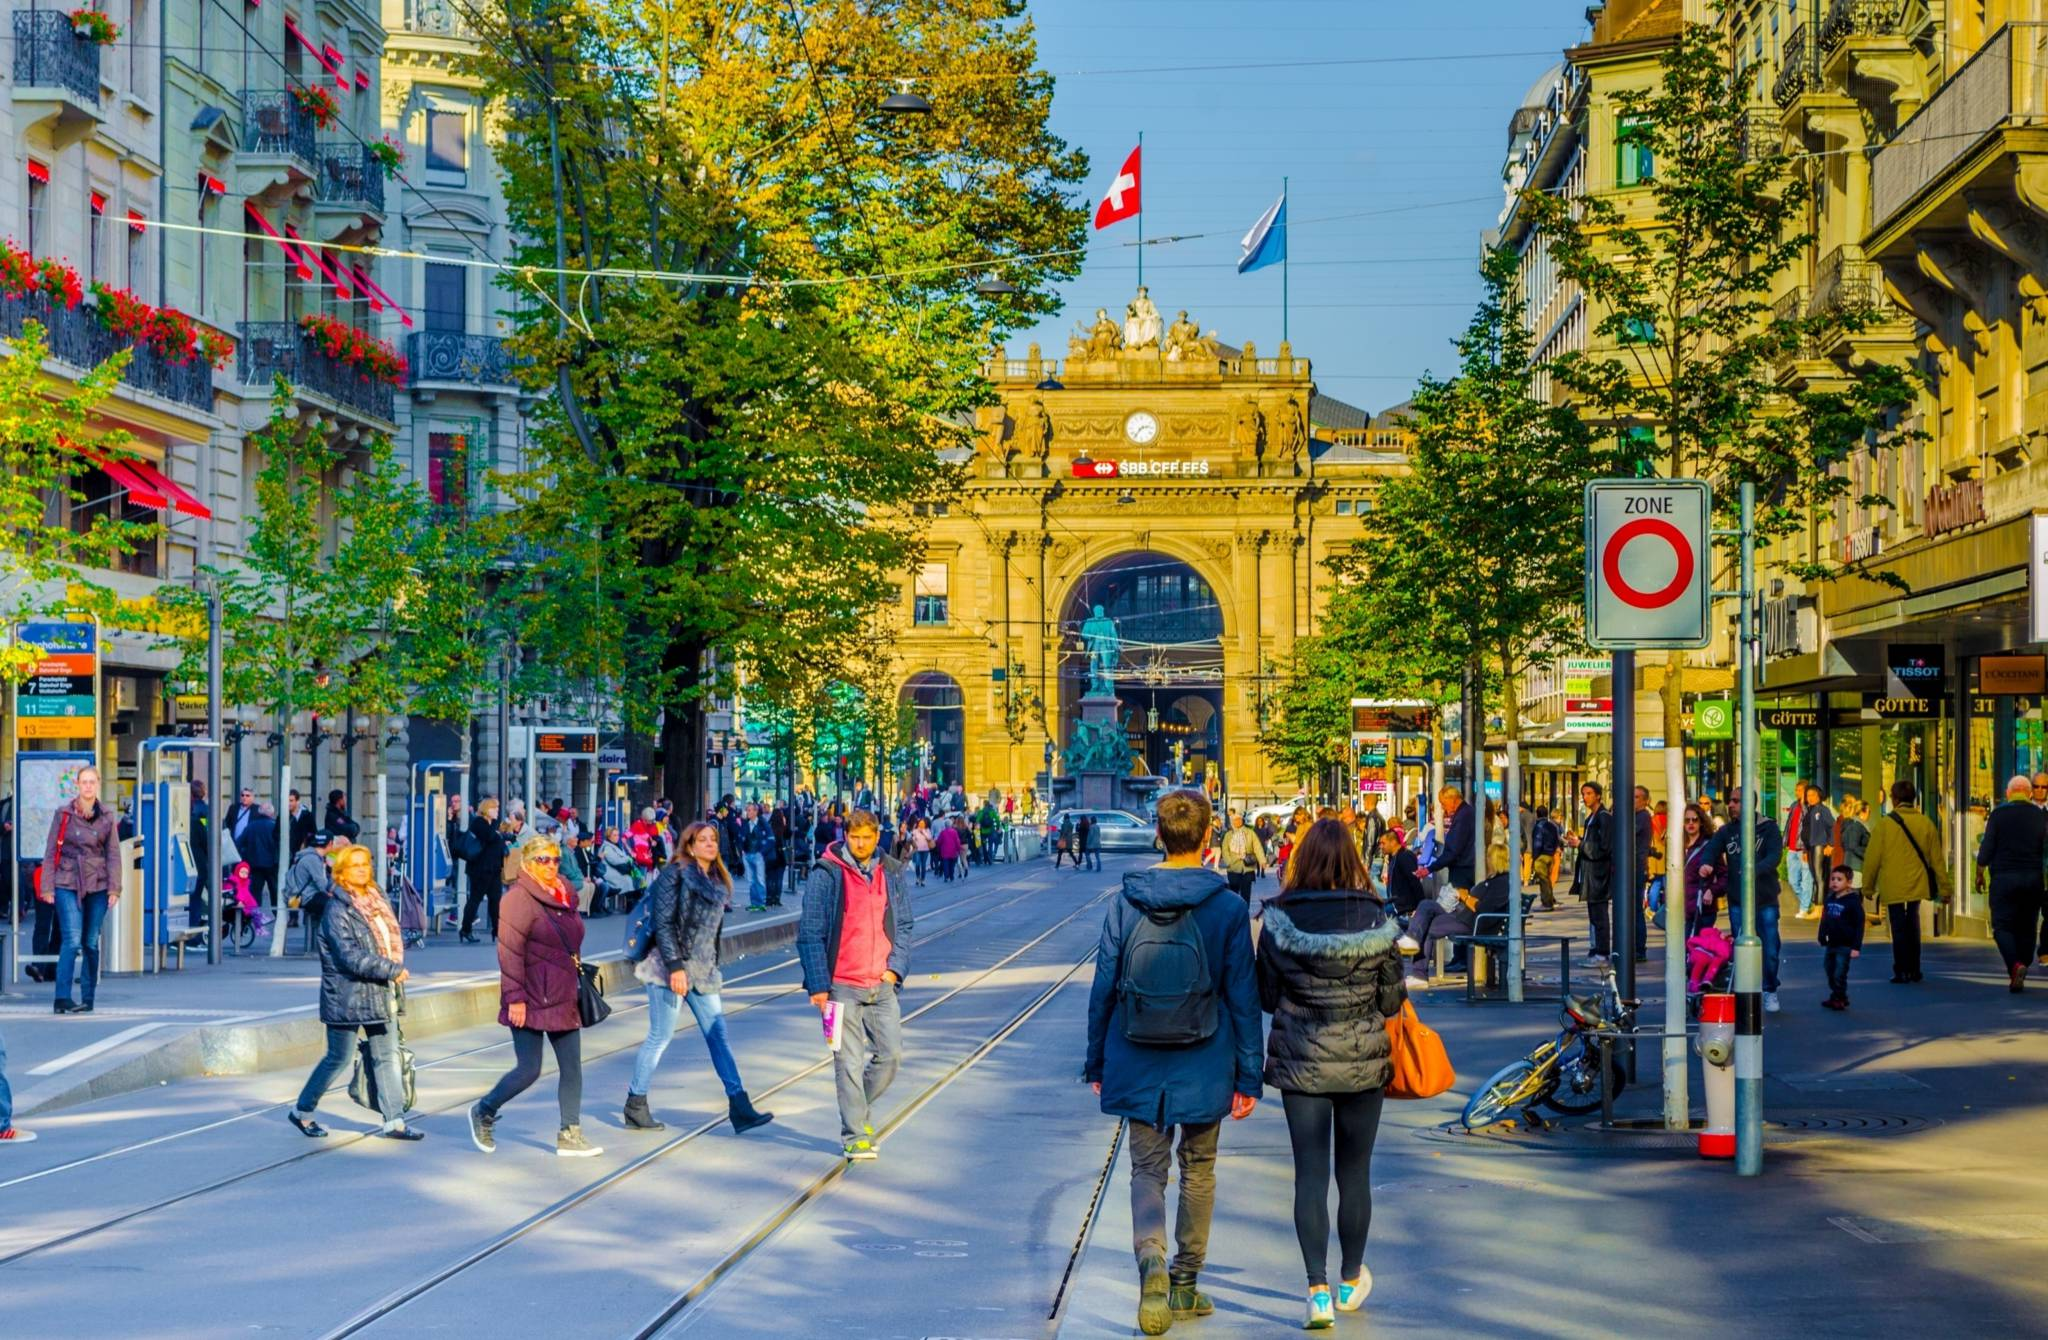 The best shopping experience in Zurich